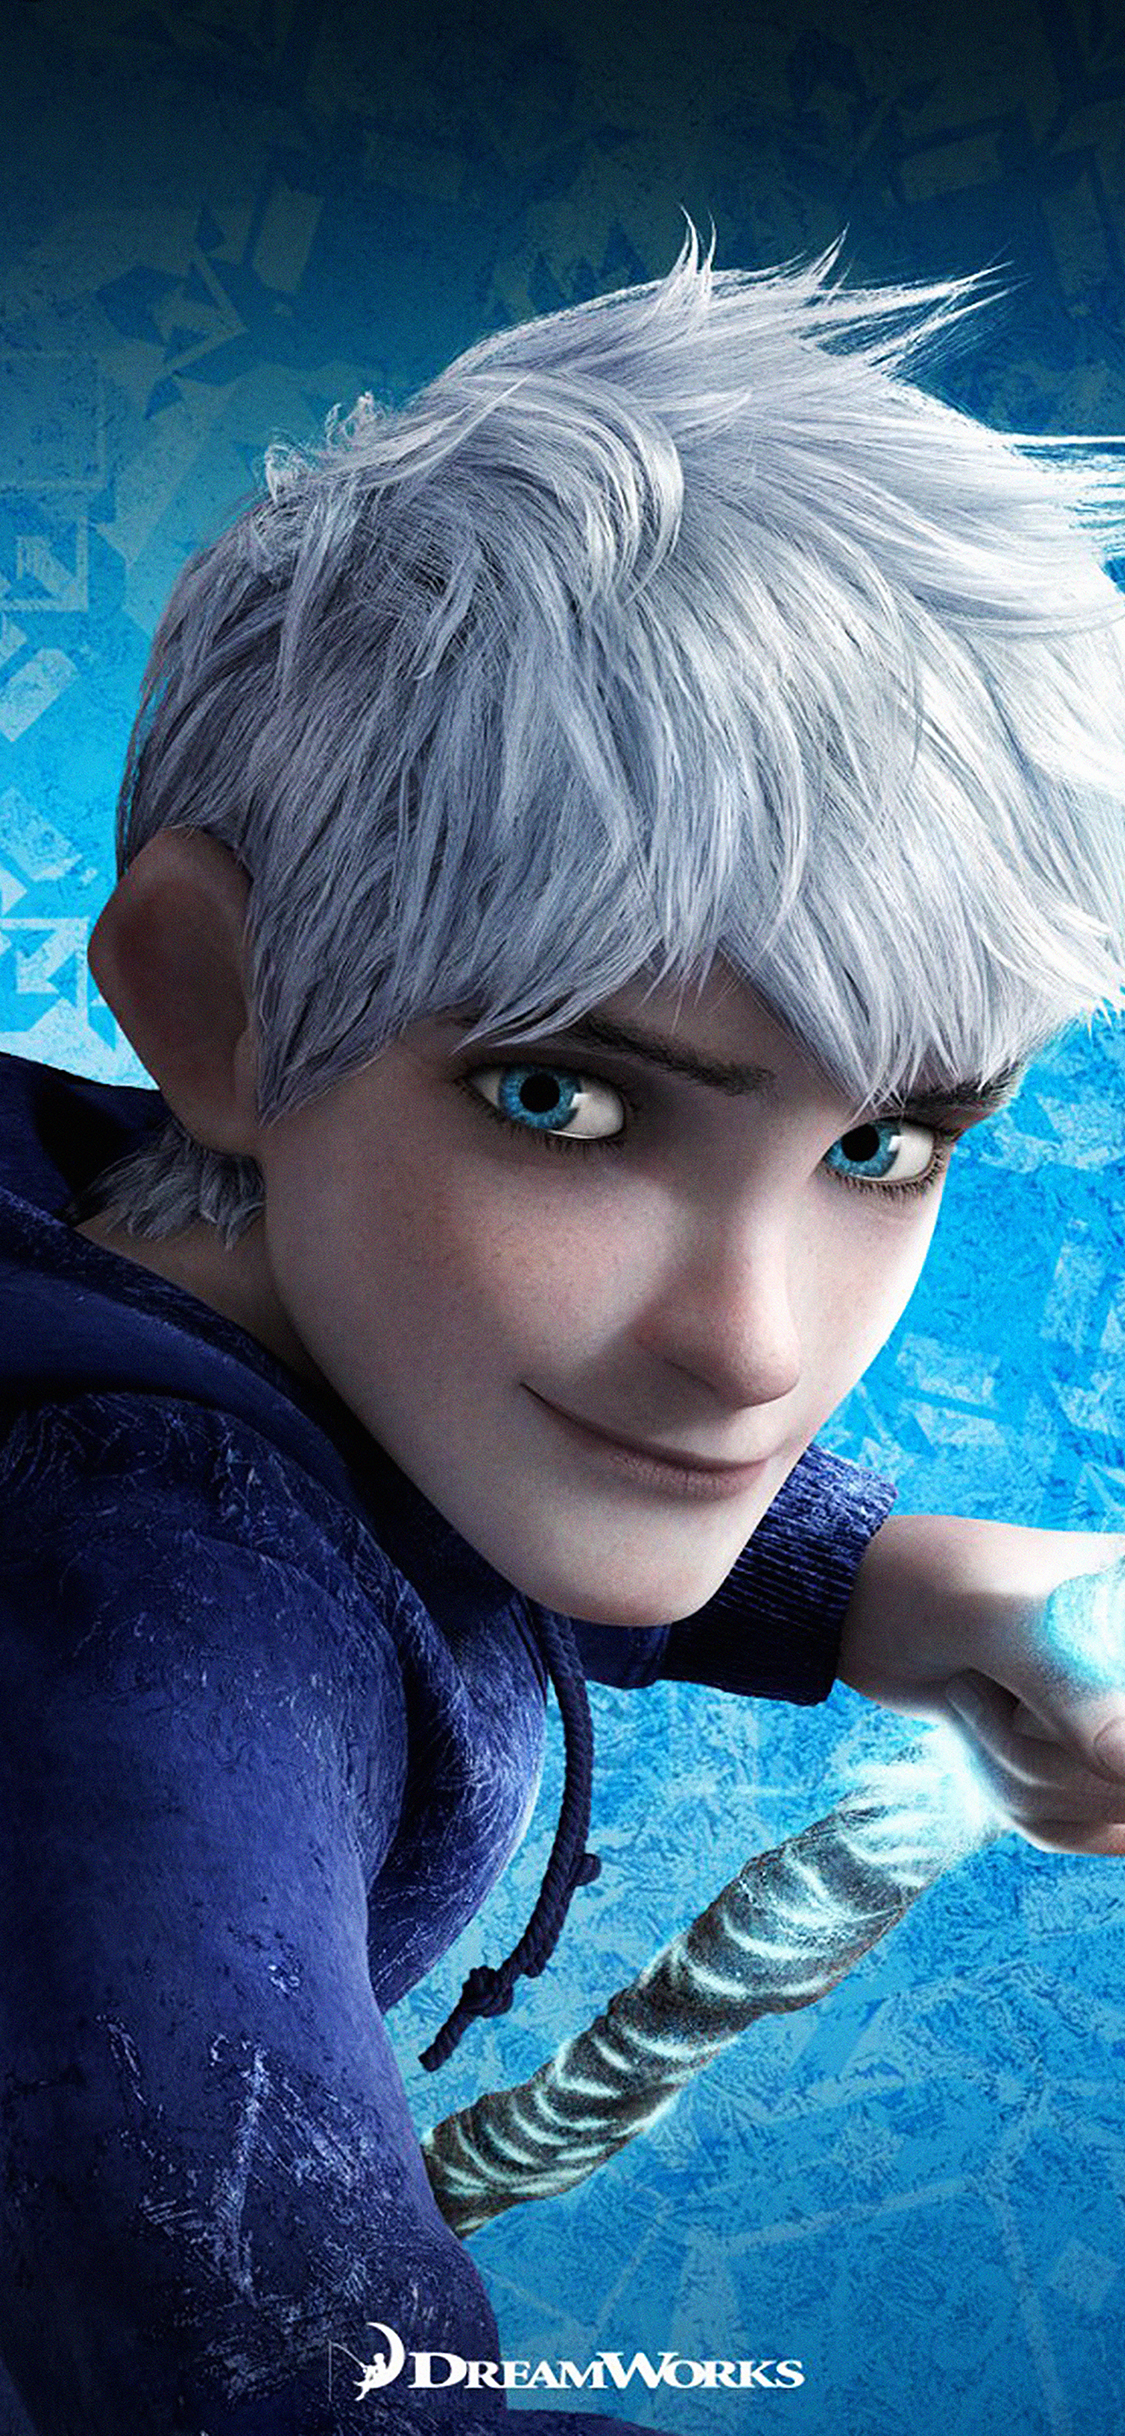 iPhoneXpapers.com-Apple-iPhone-wallpaper-ac36-wallpaper-rise-of-the-guardians-jack-frost-dreamworks